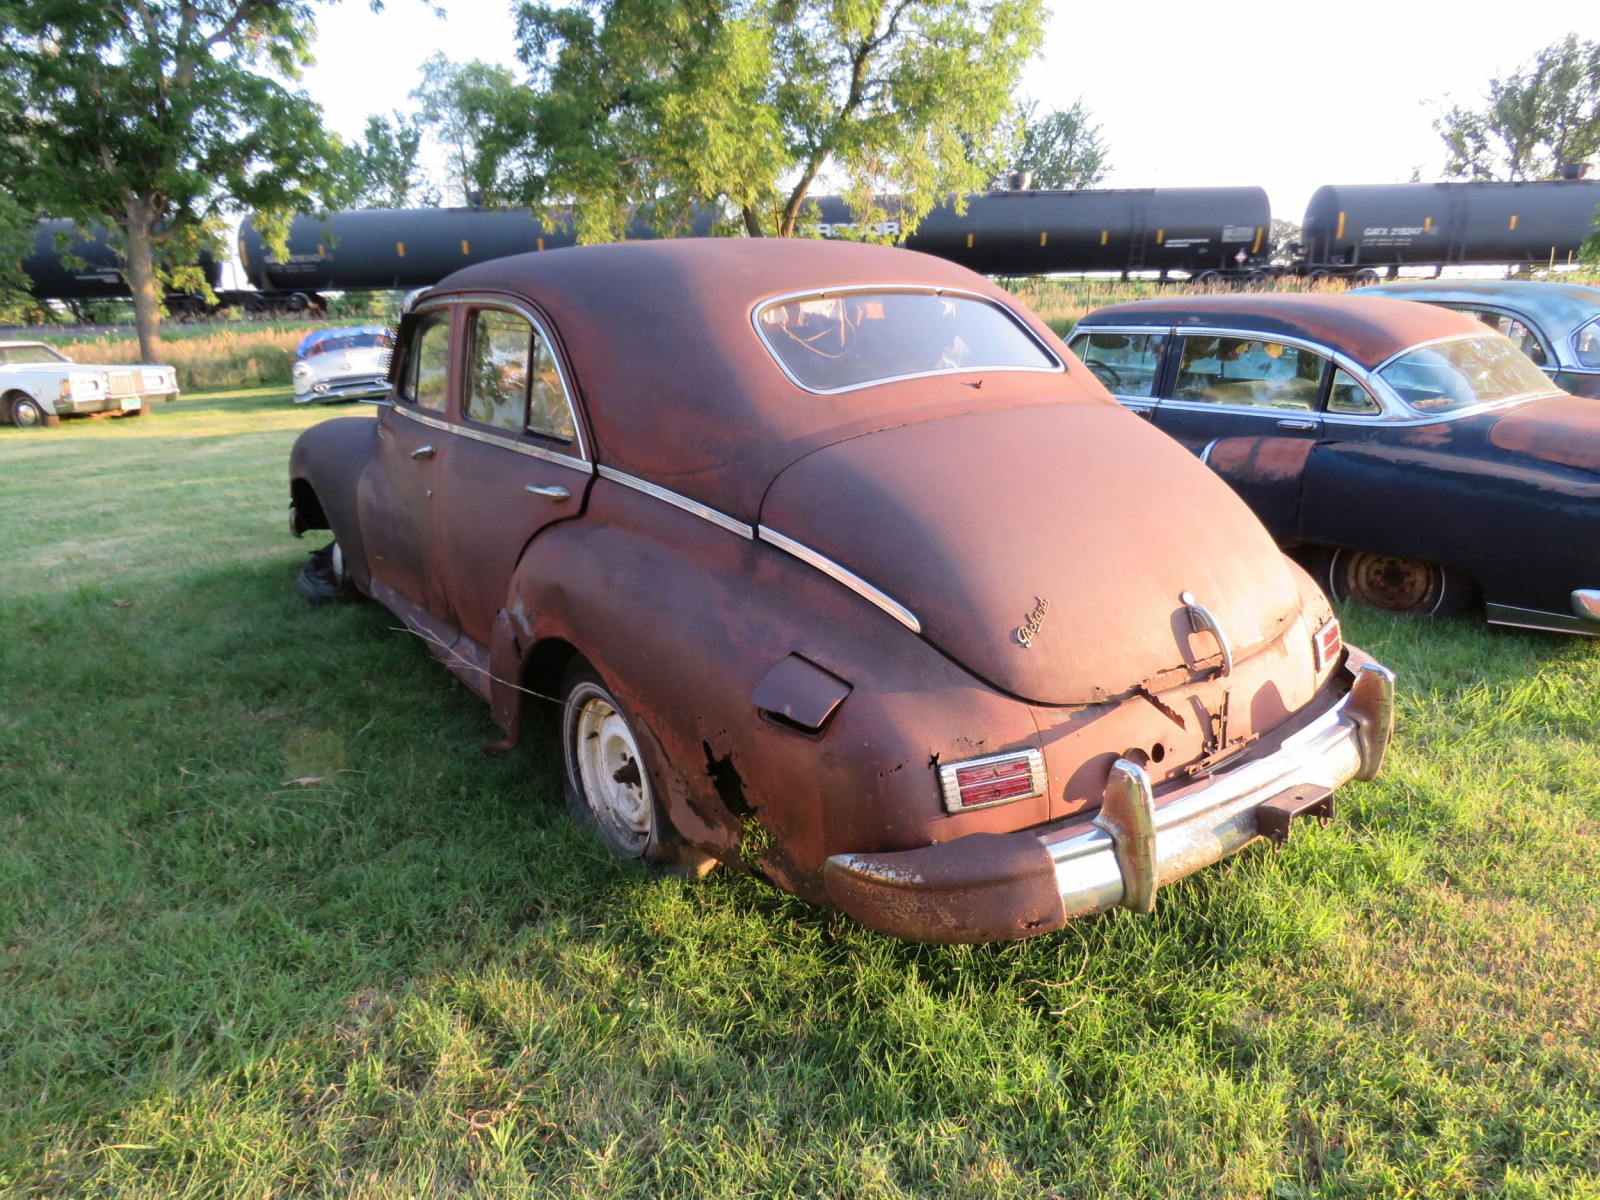 1948 Packard Sedan for parts - Image 4